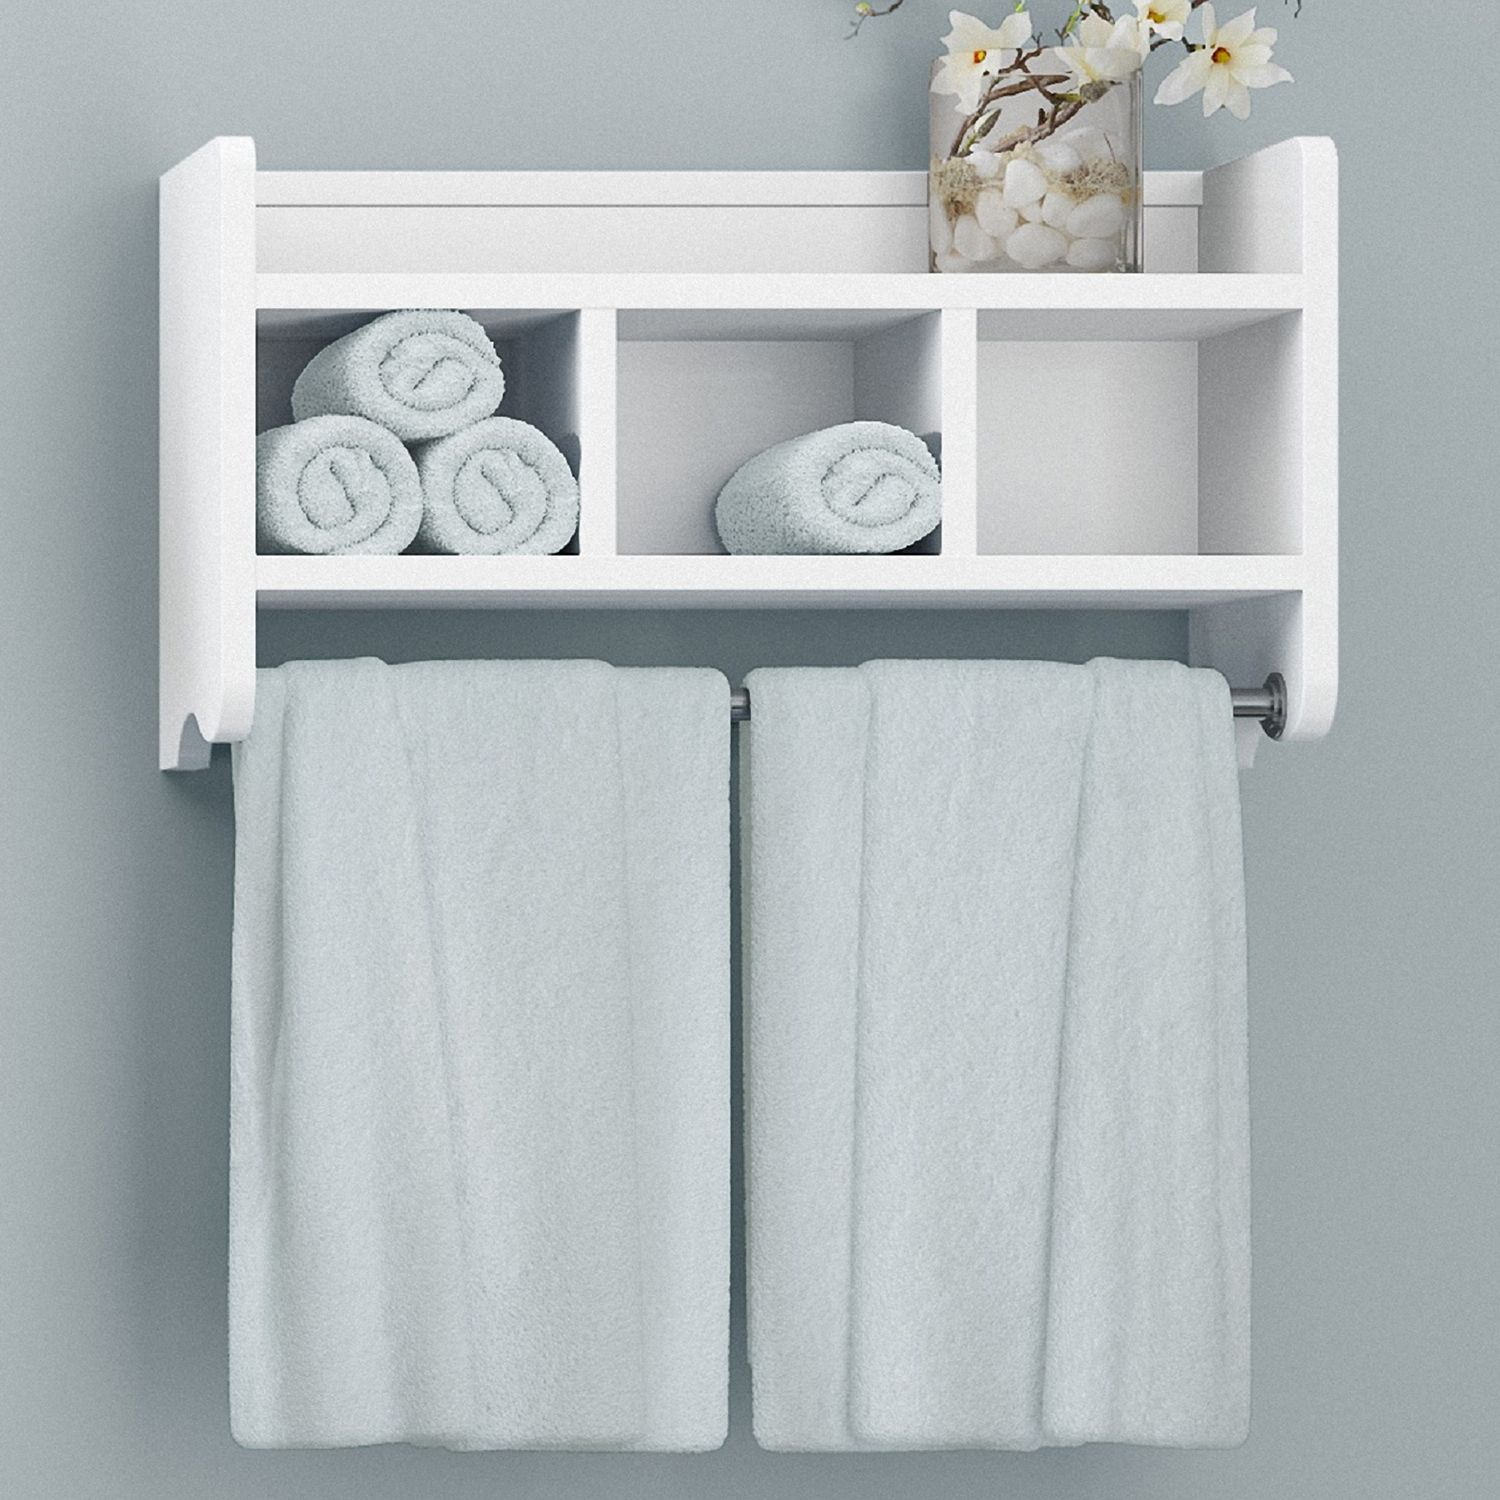 Bolton Bathroom Storage Cubby U0026 Towel Bar Wall Shelf